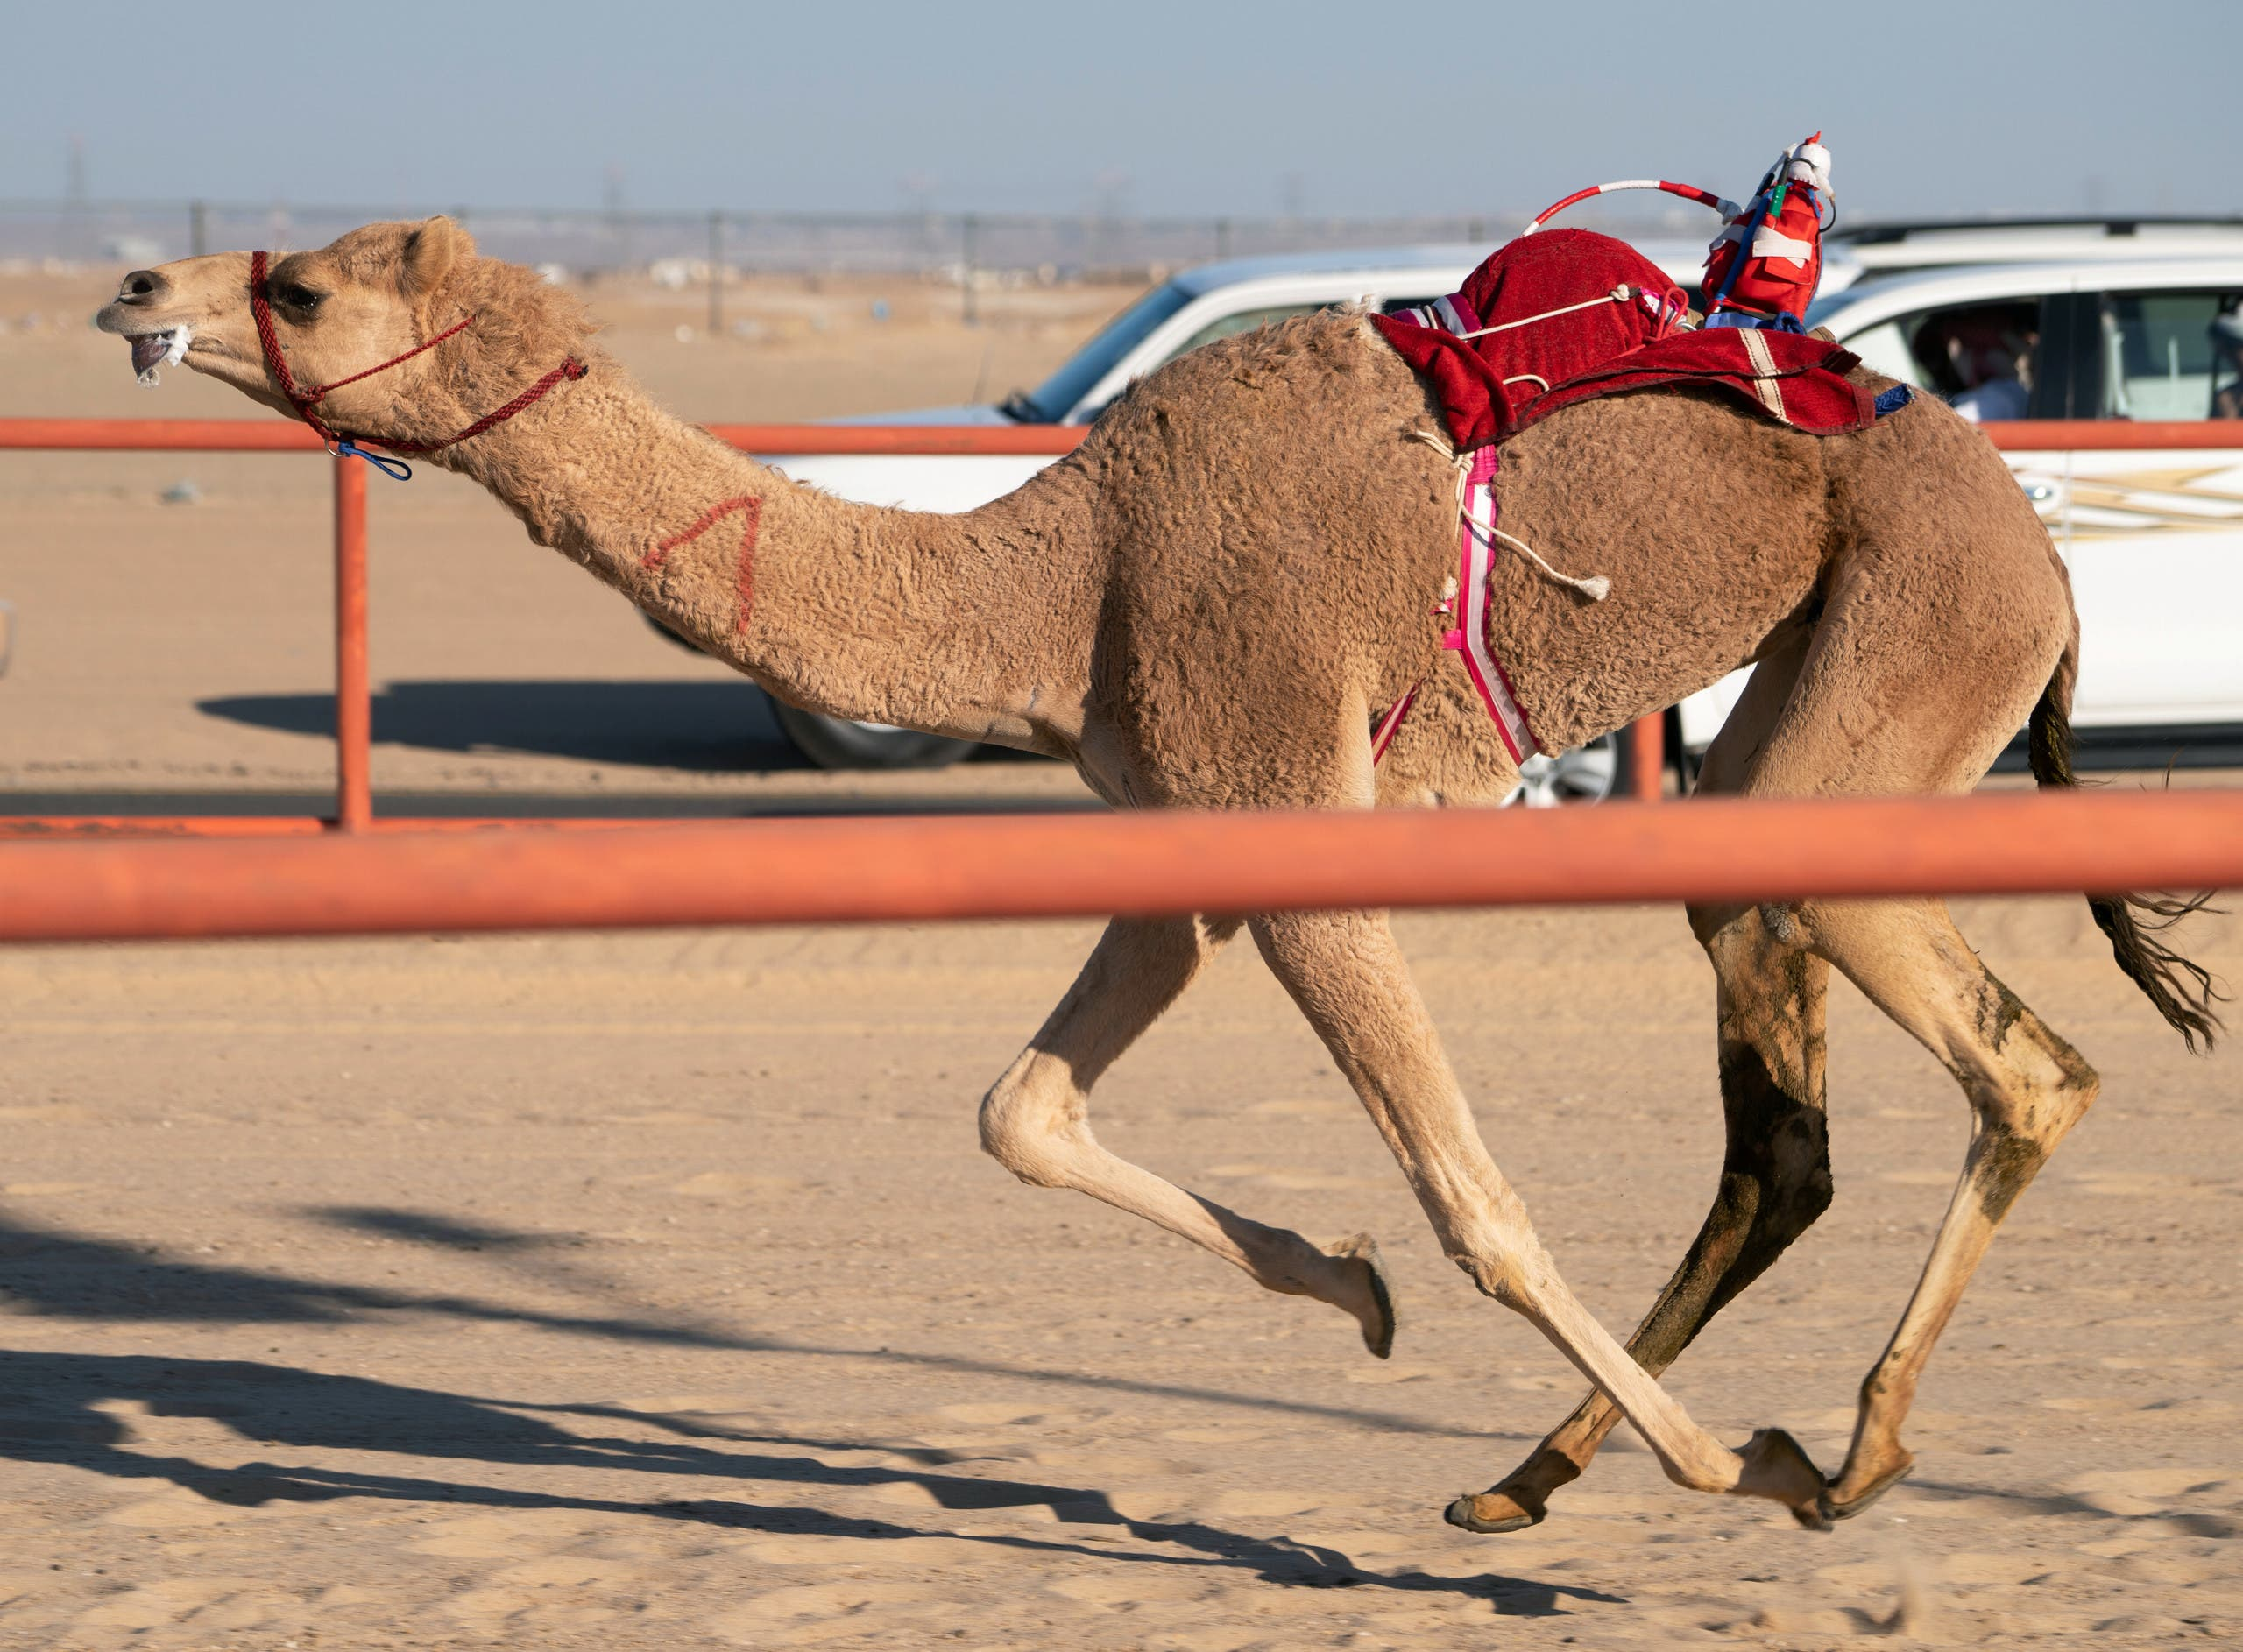 A robot rides atop a camel during a camel race at the Kuwait Camel Race track in Kebd, Kuwait January 25, 2020. (Reuters)